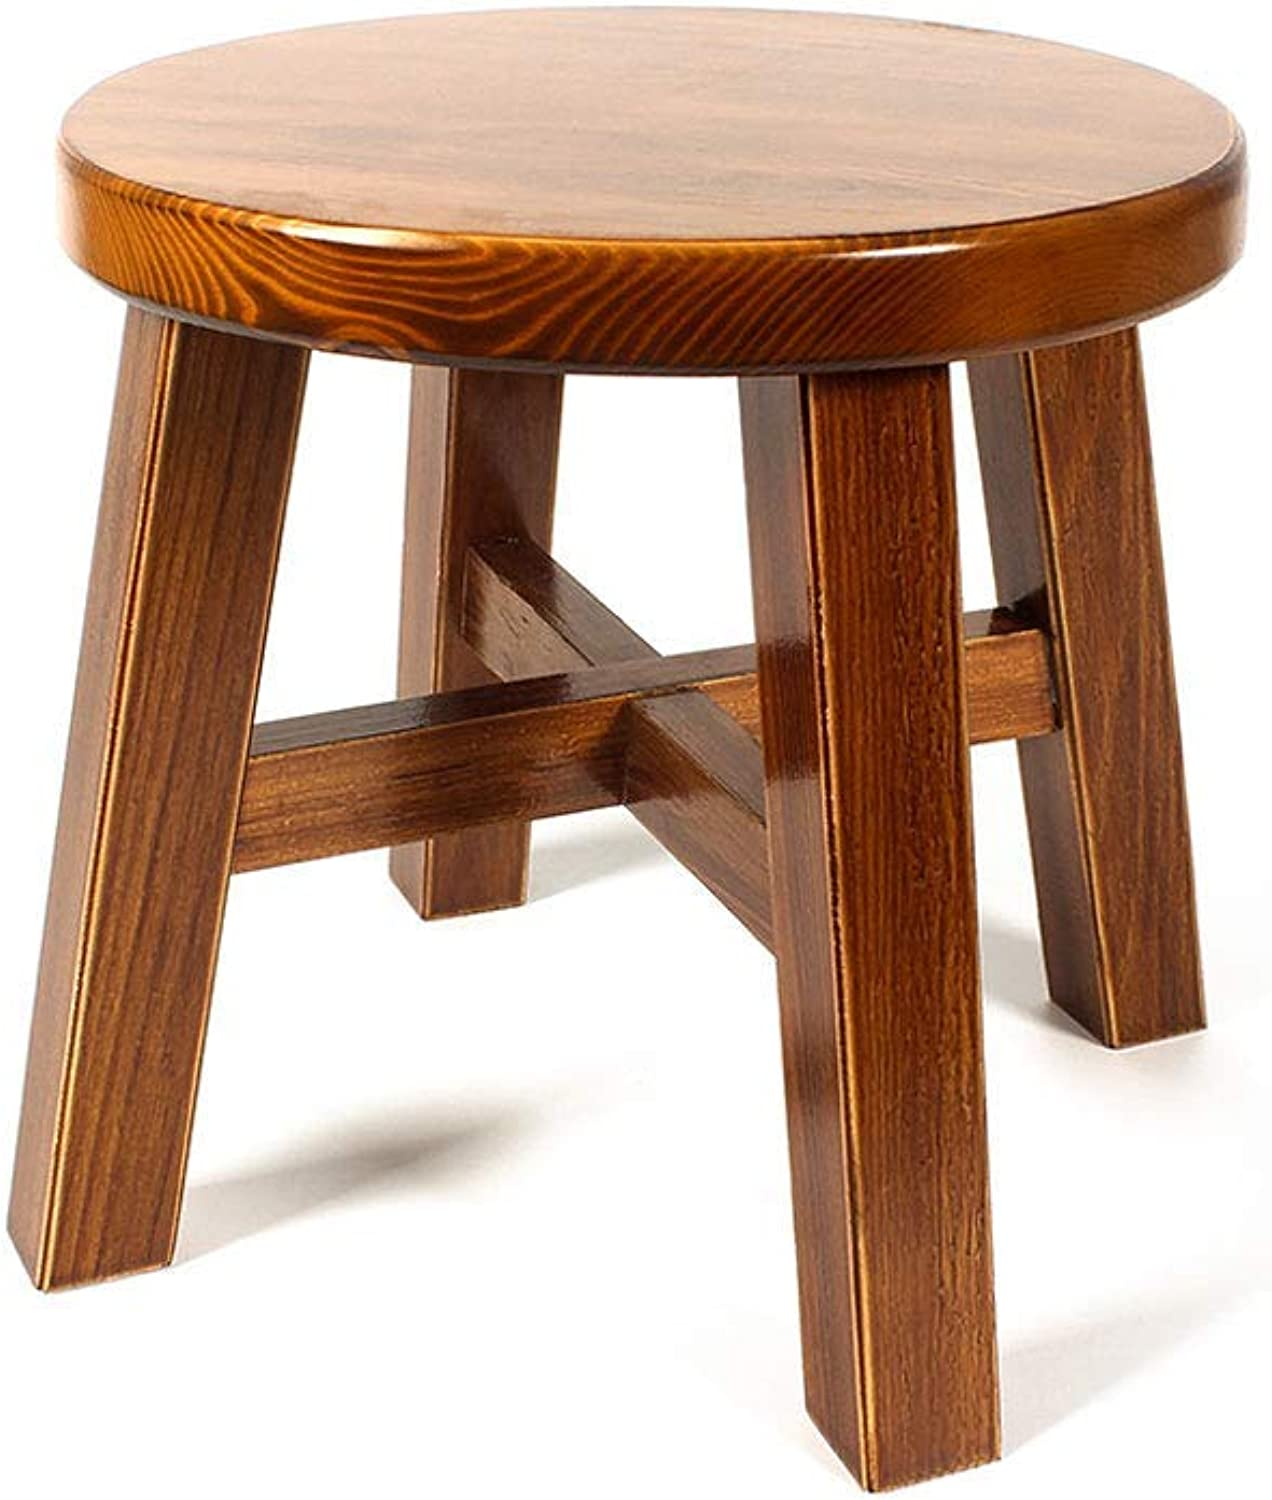 GJD Solid Wood Stool, Creative New Home Solid Wood Small Stool Change shoes Stool Low Stool Home Solid Wood Footstool